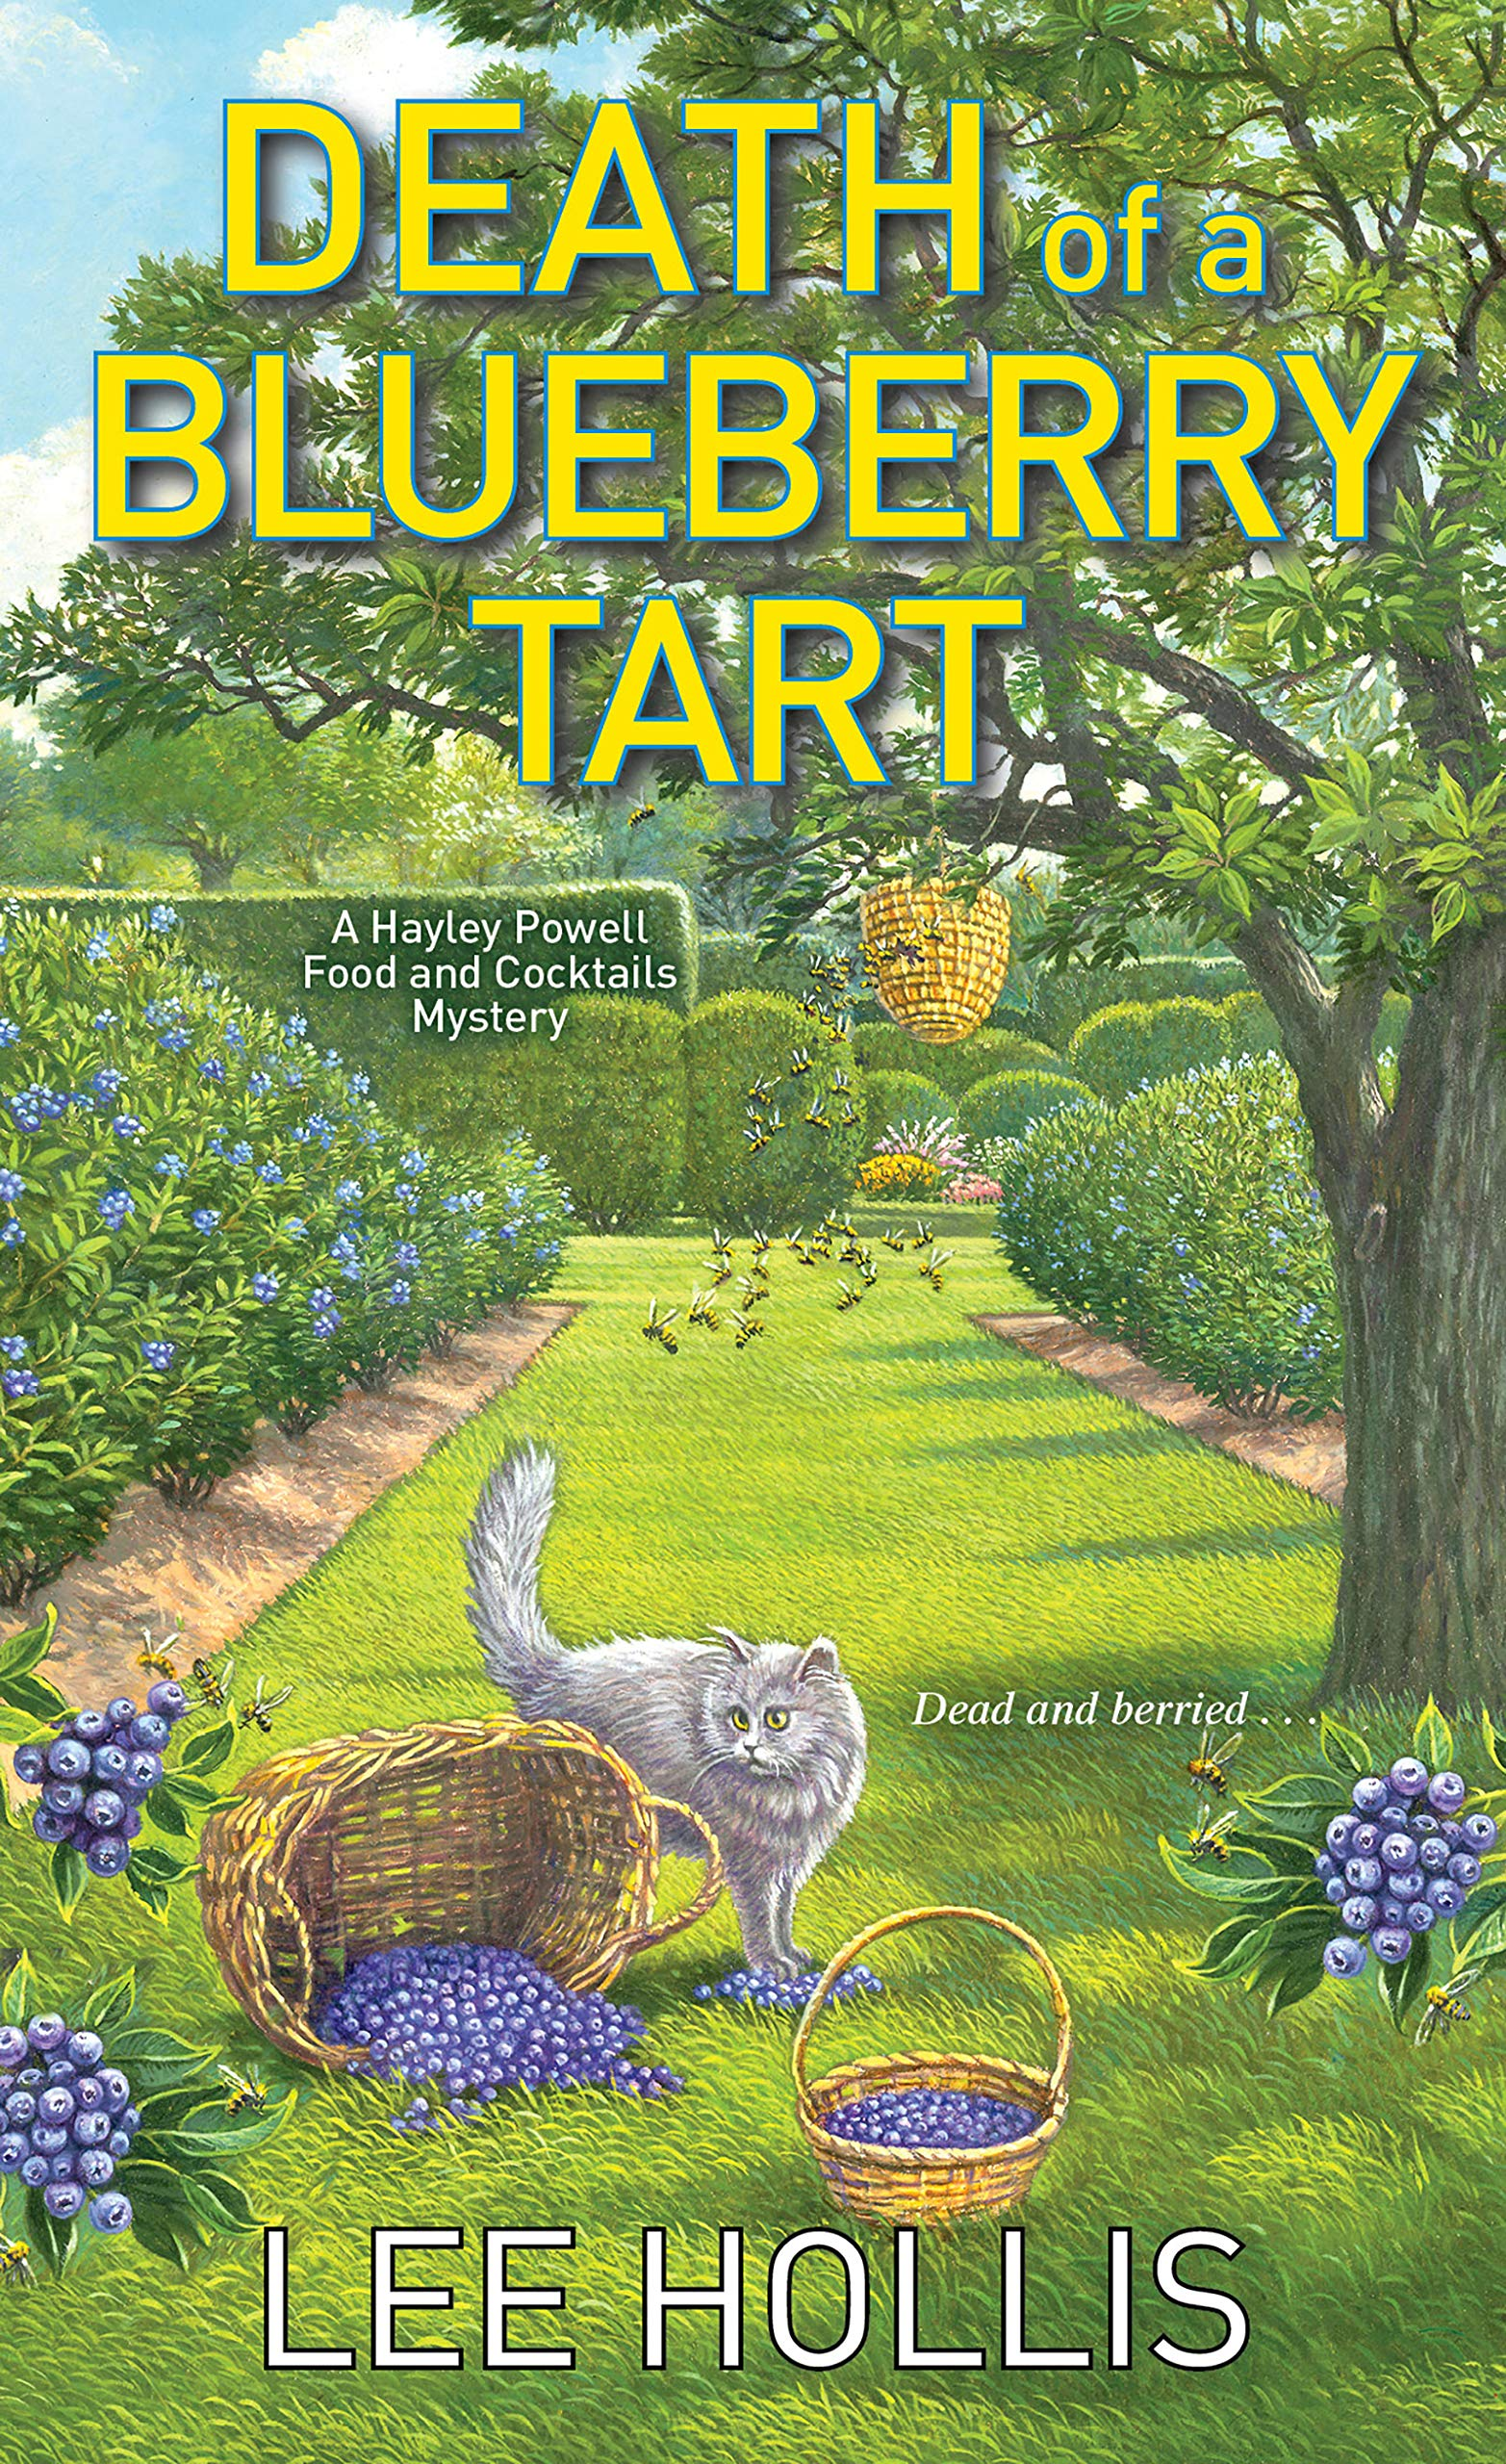 Death of a Blueberry Tart (Hayley Powell Food and Cocktails Mystery #12)